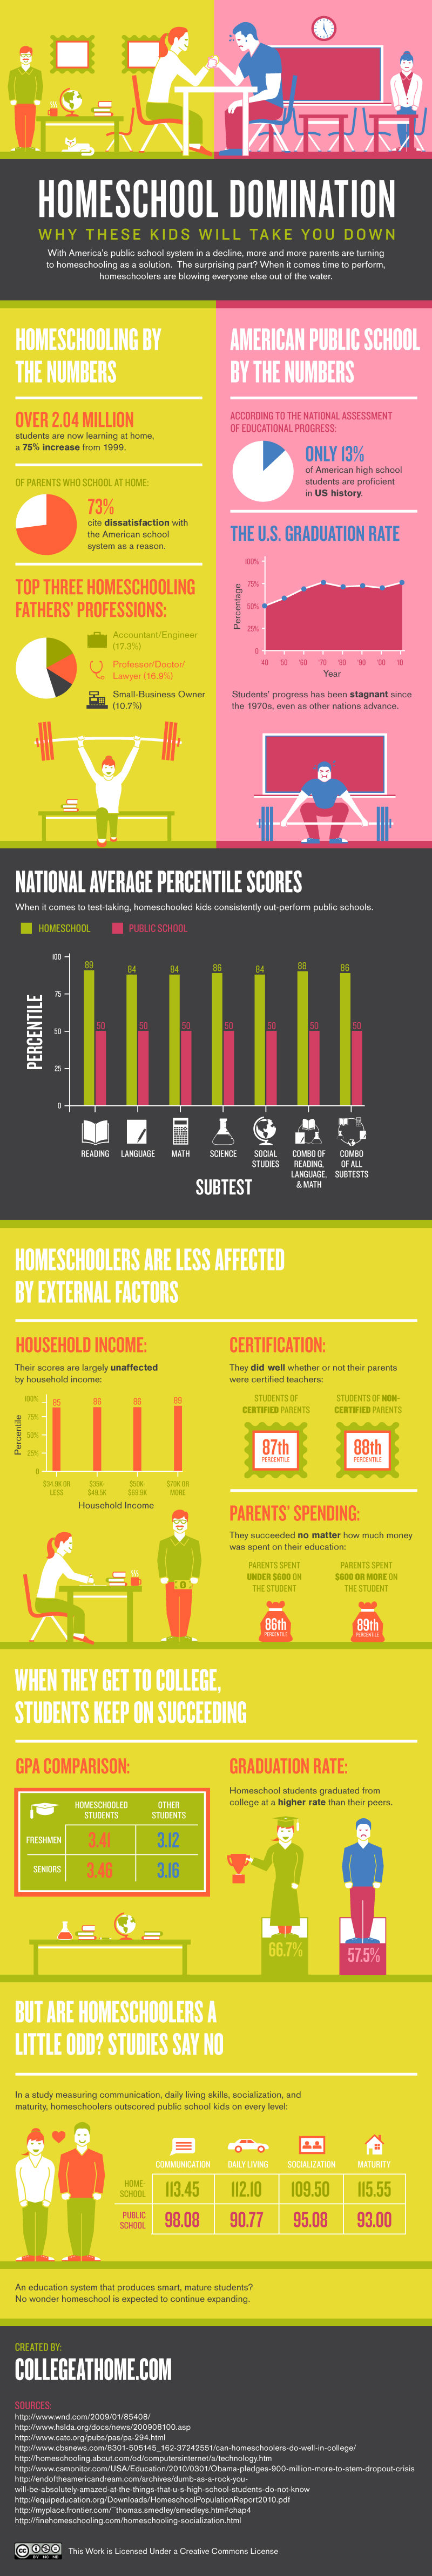 Homeschool Domination Infographic by College At Home